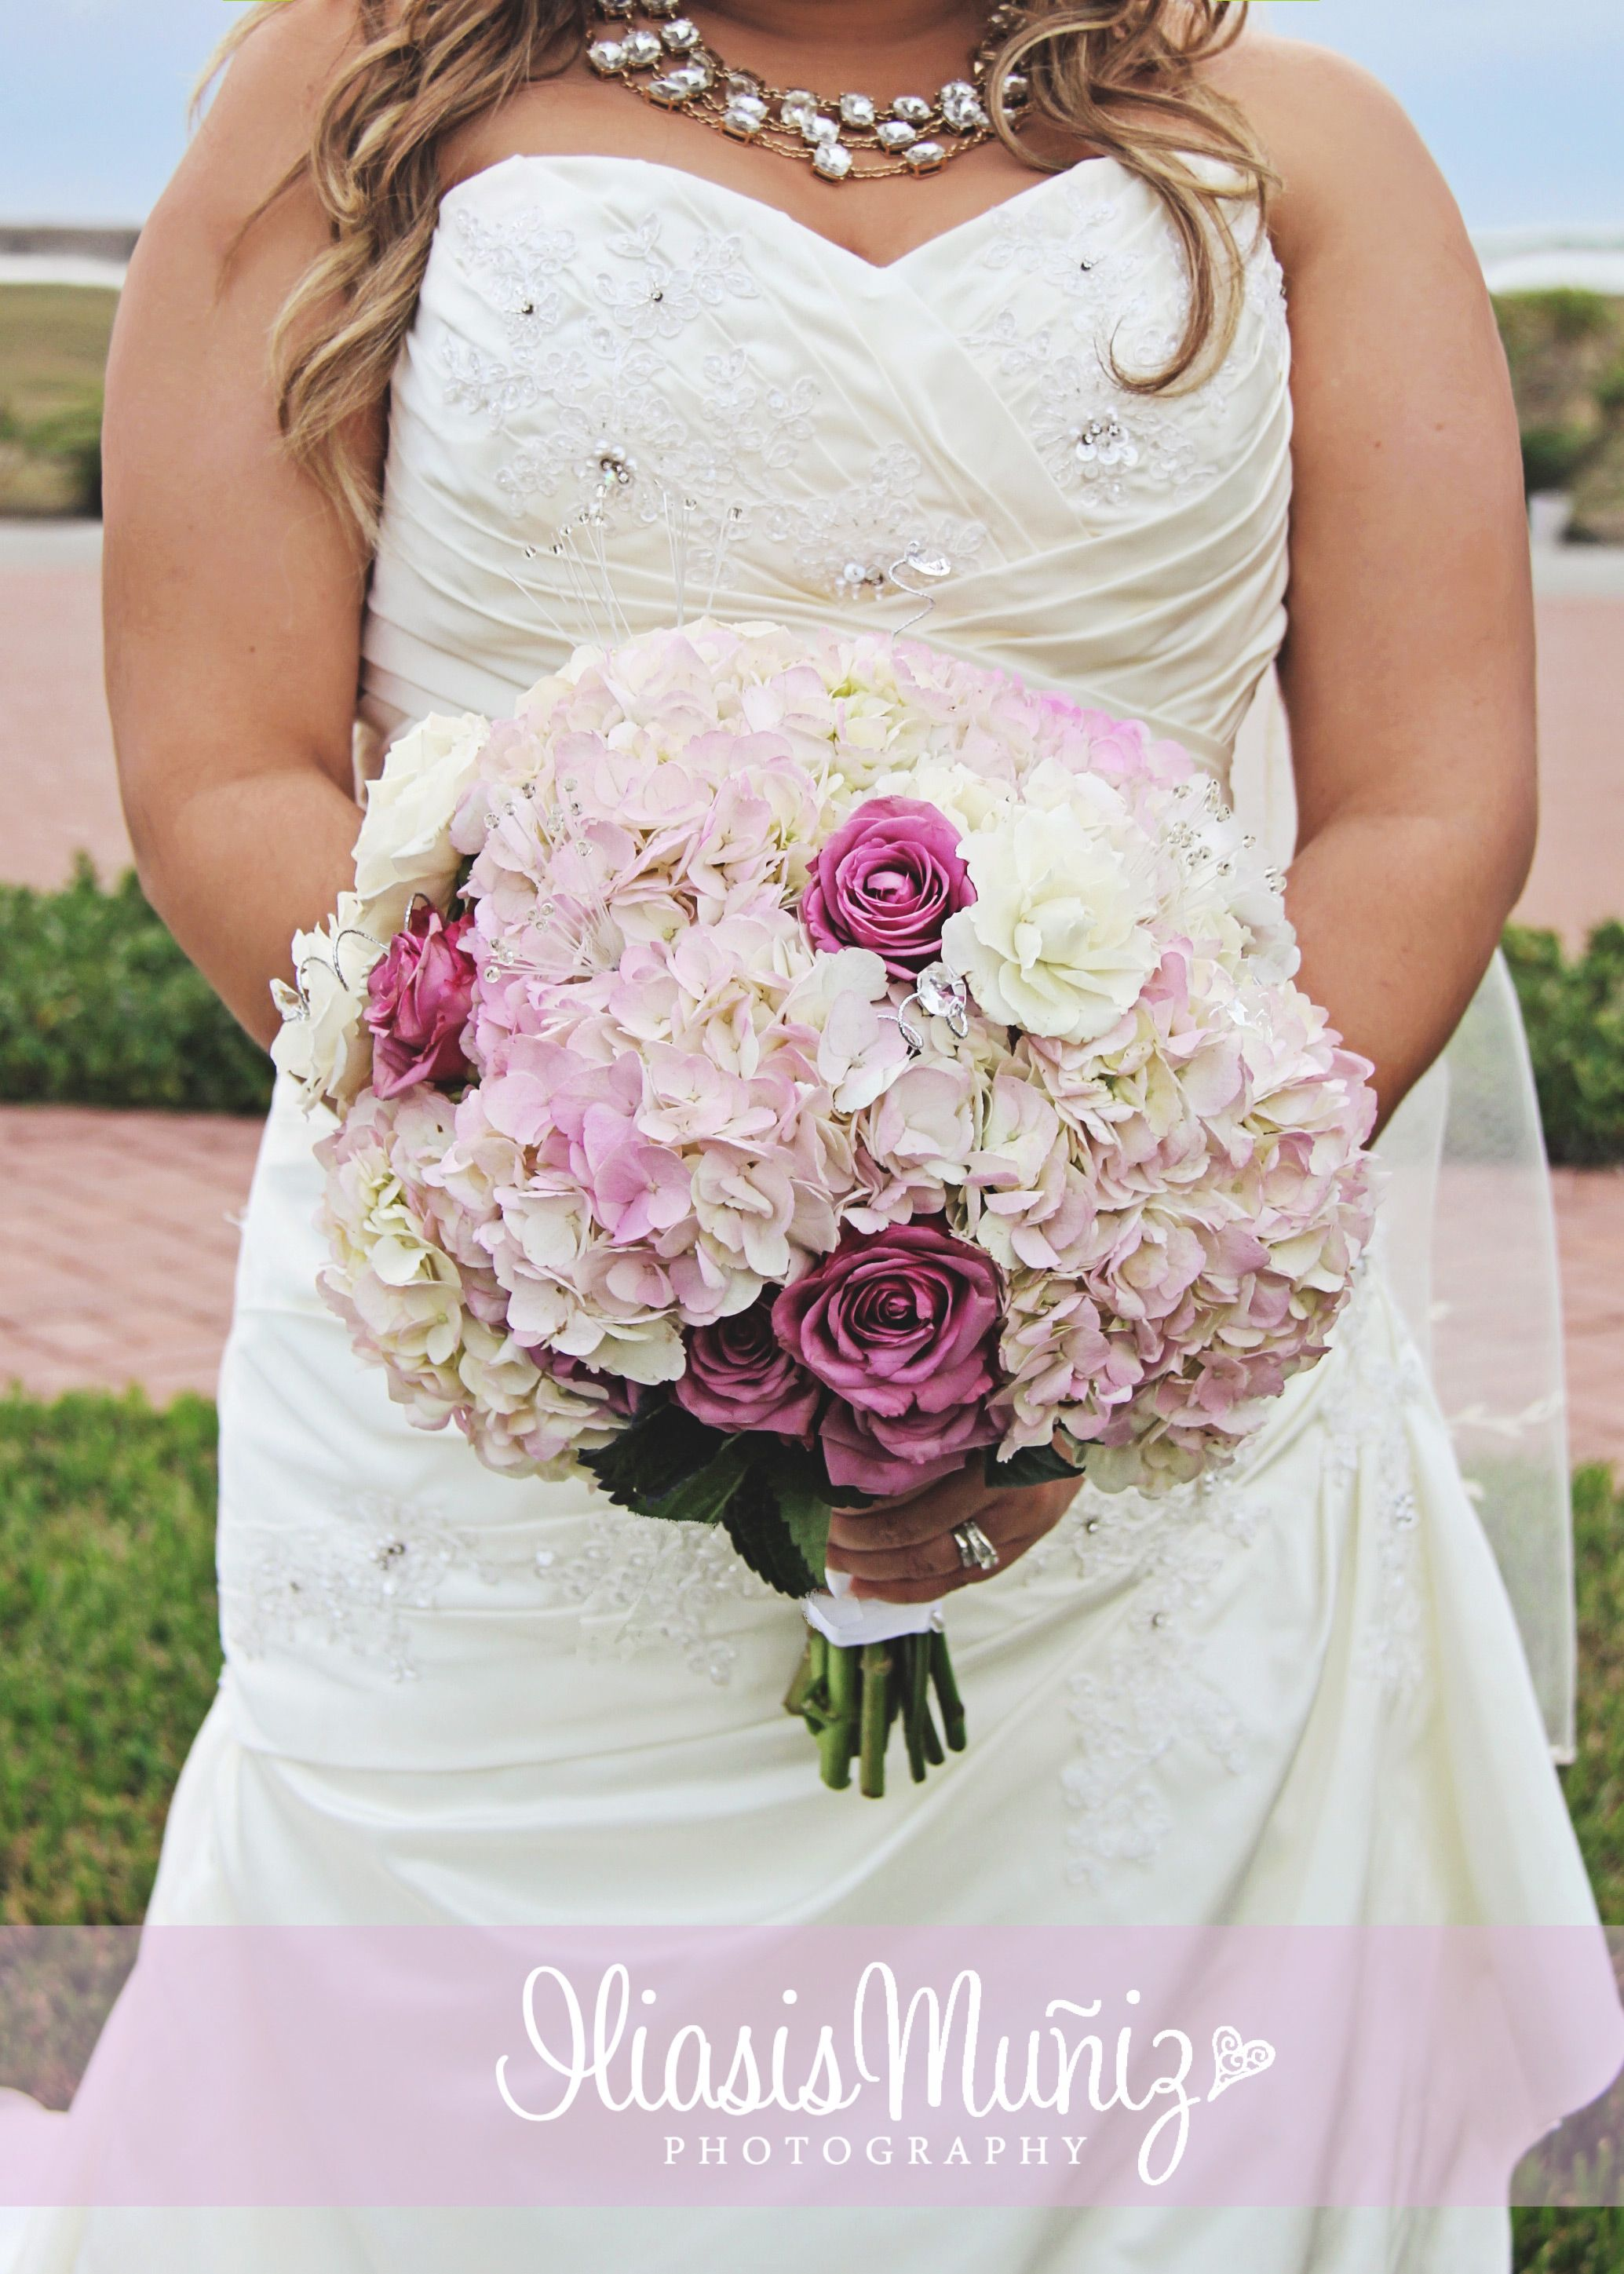 Weddings | Iliasis Muniz Photography Created by Zoe Flowers & Design Bouquet, wedding photos, Bride bouquet photos.